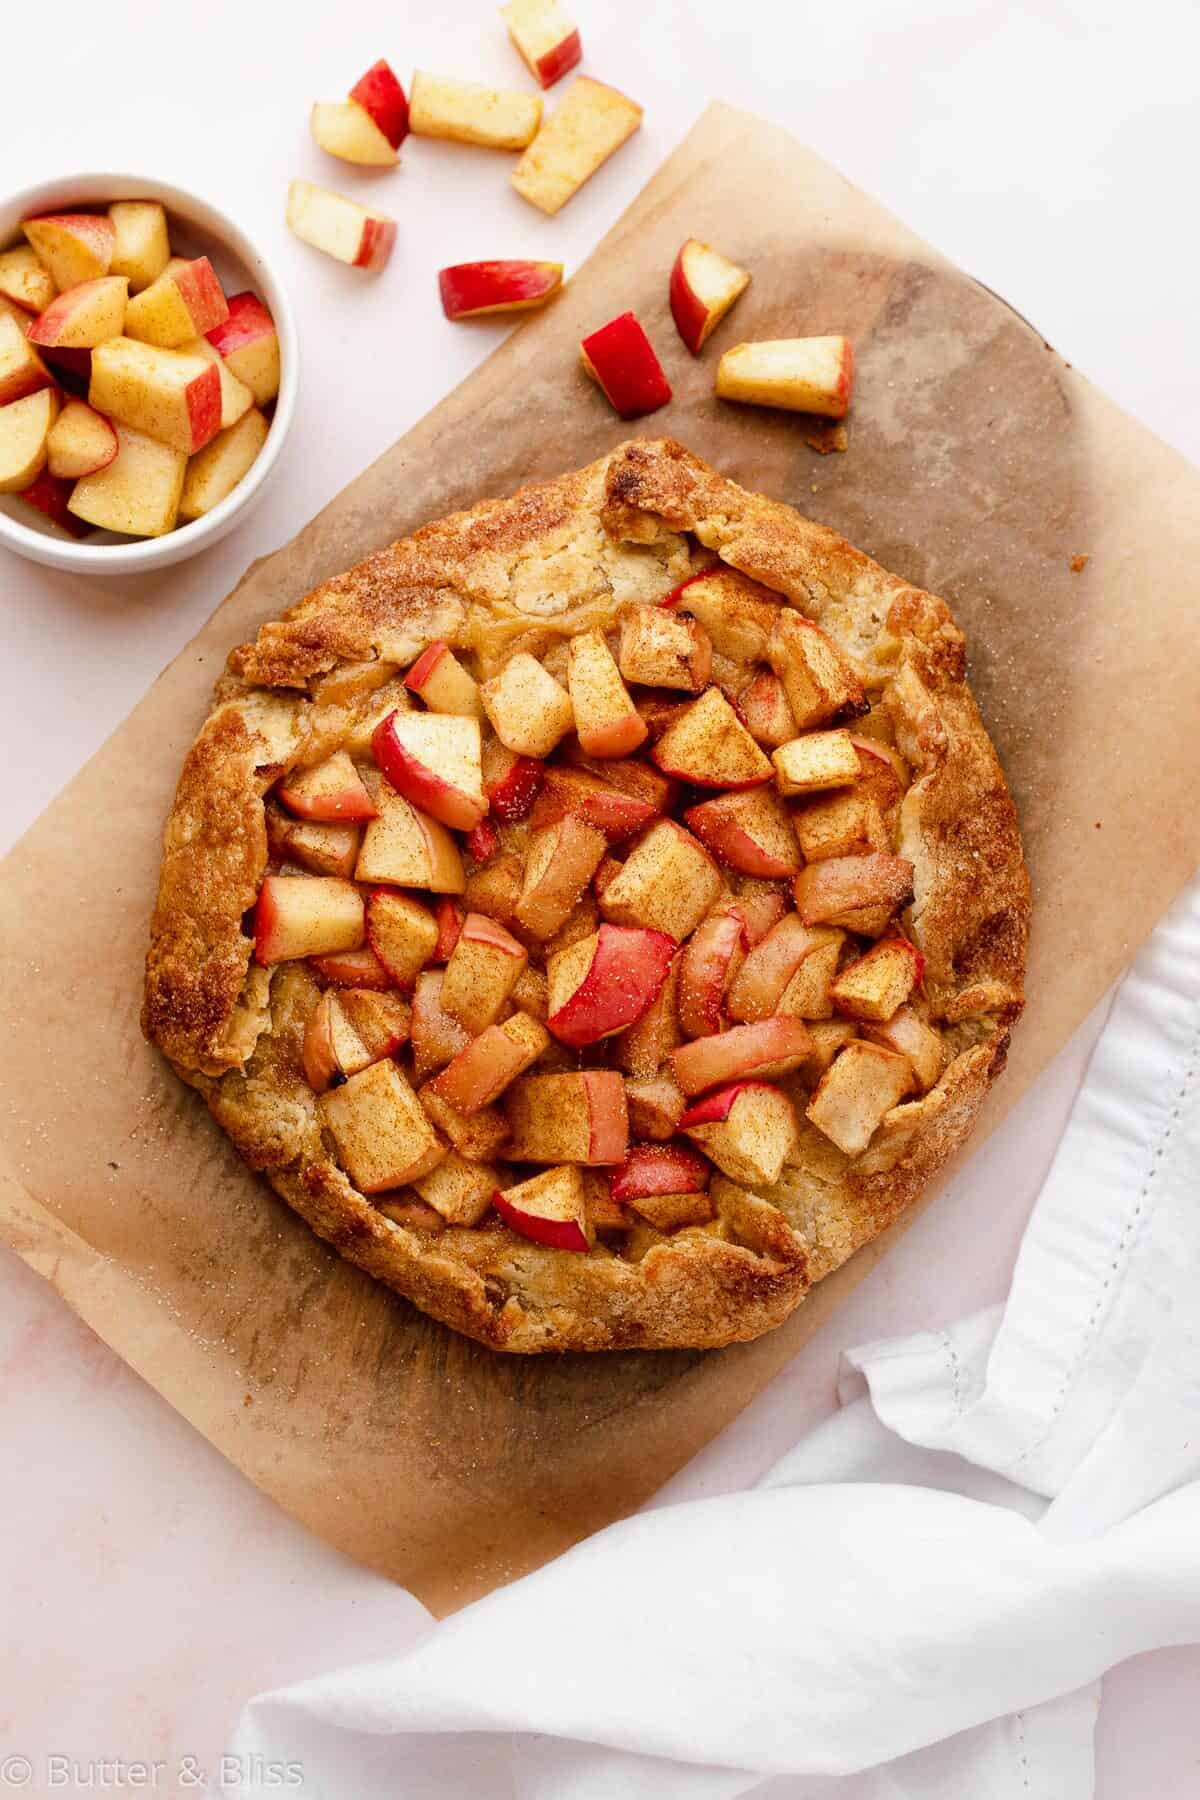 Apple galette cooling on a wood board